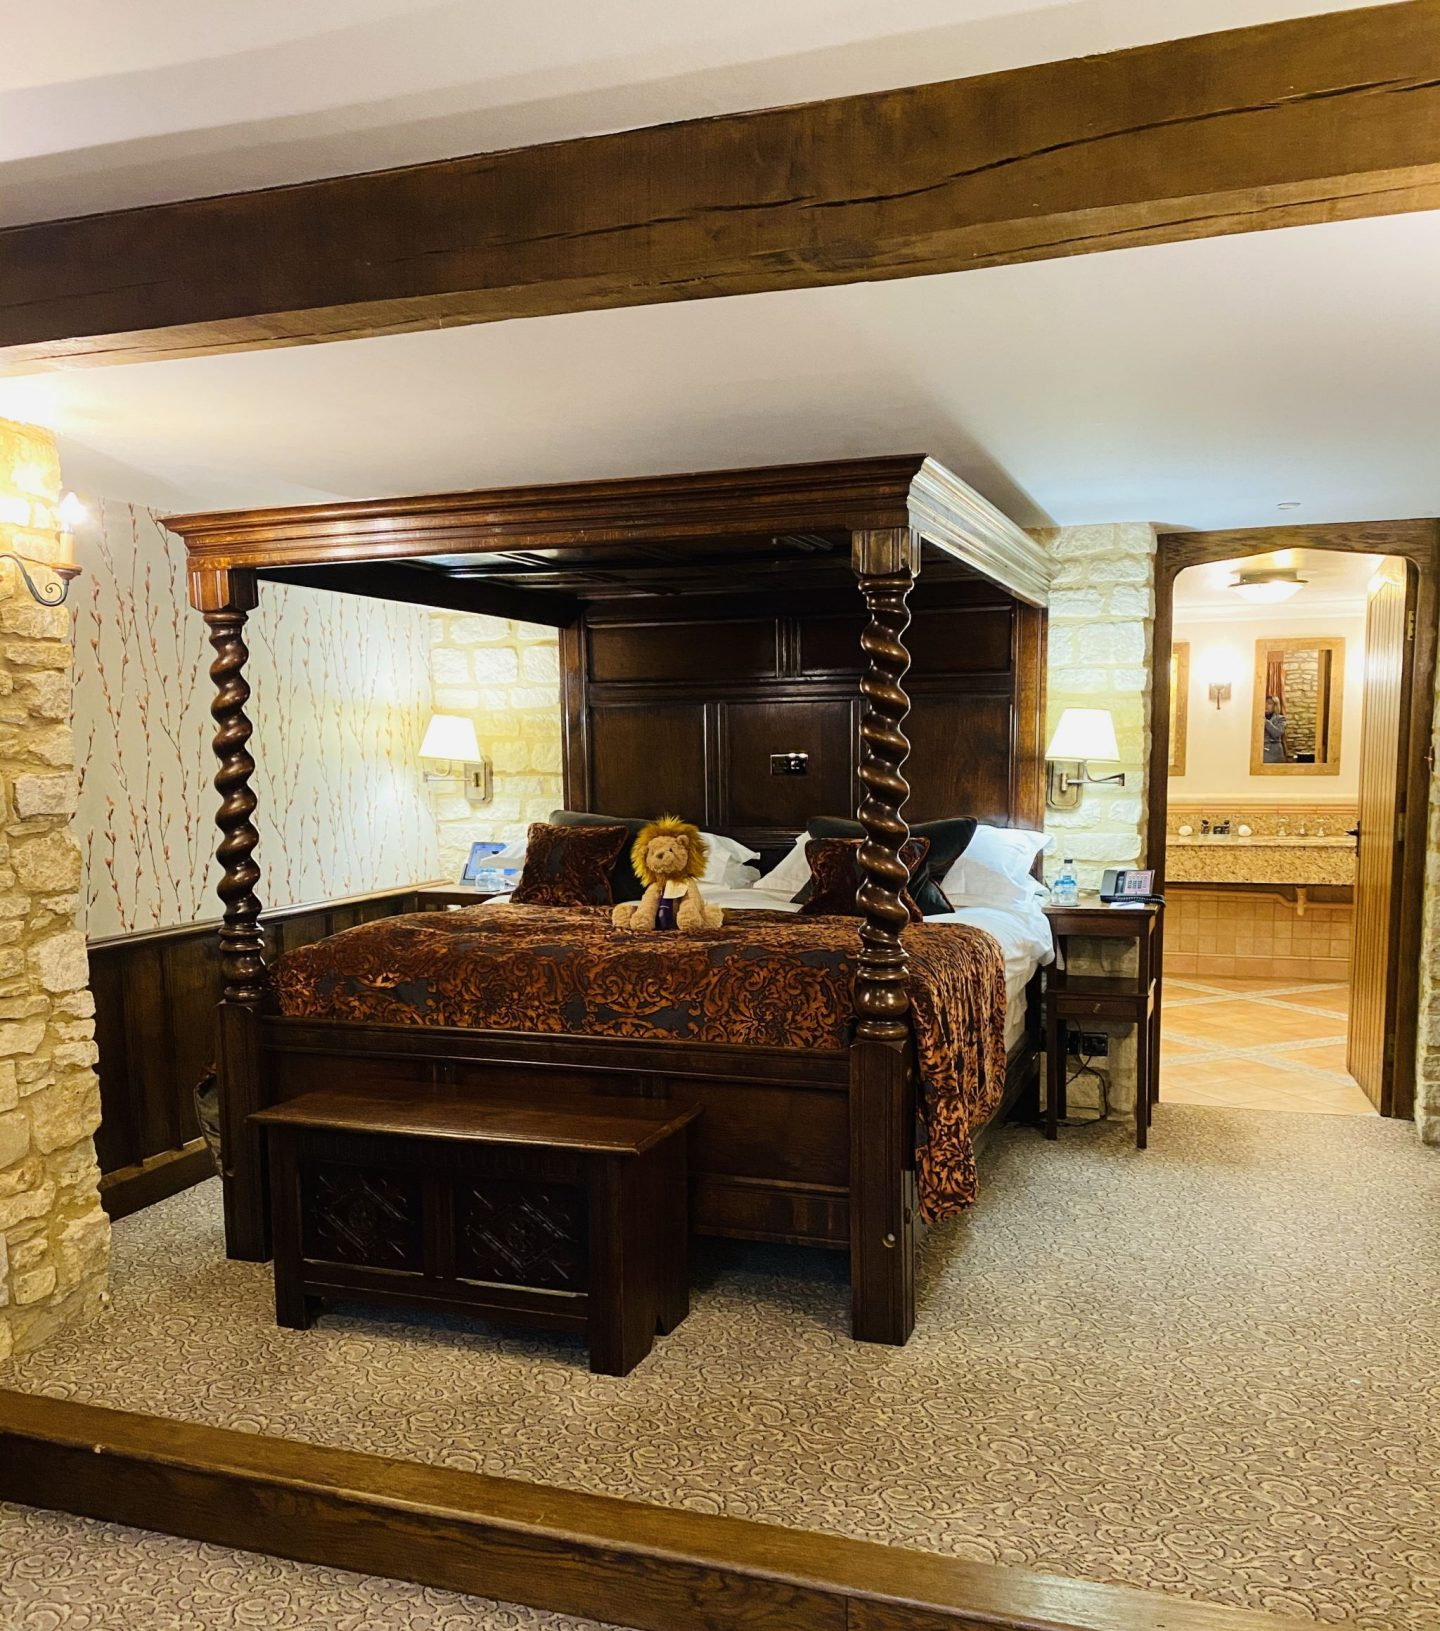 Staying at The Manor, Castle Coombe